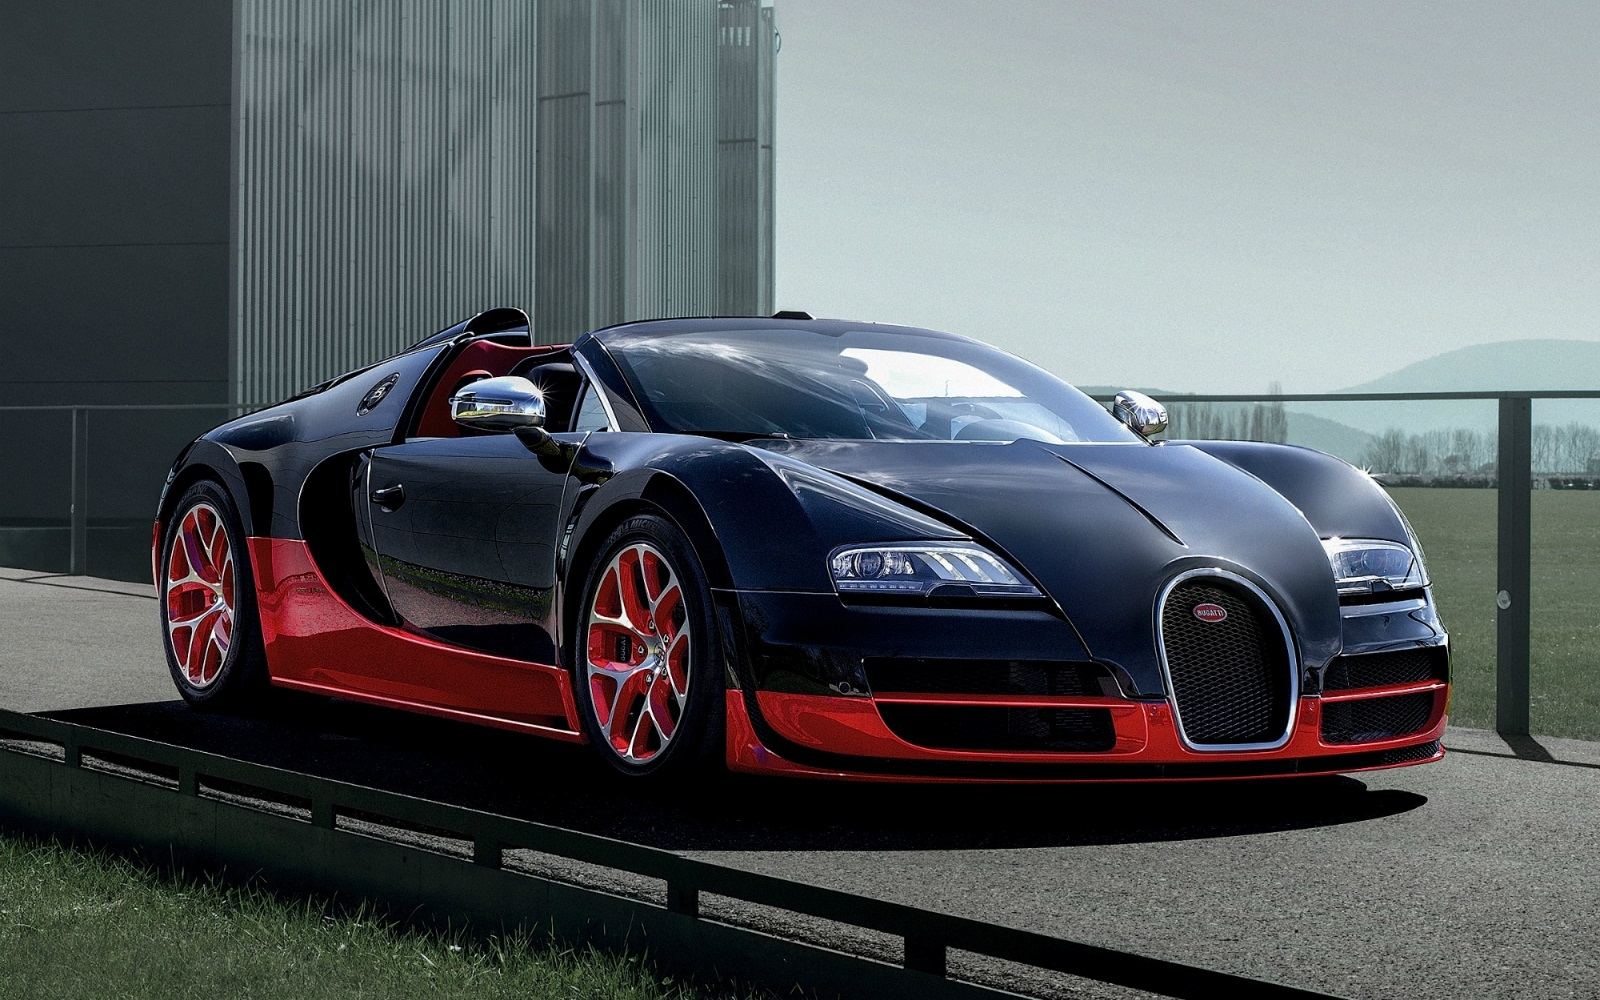 bugatti veyron 16 4 grand sport vitesse engine bugatti. Black Bedroom Furniture Sets. Home Design Ideas